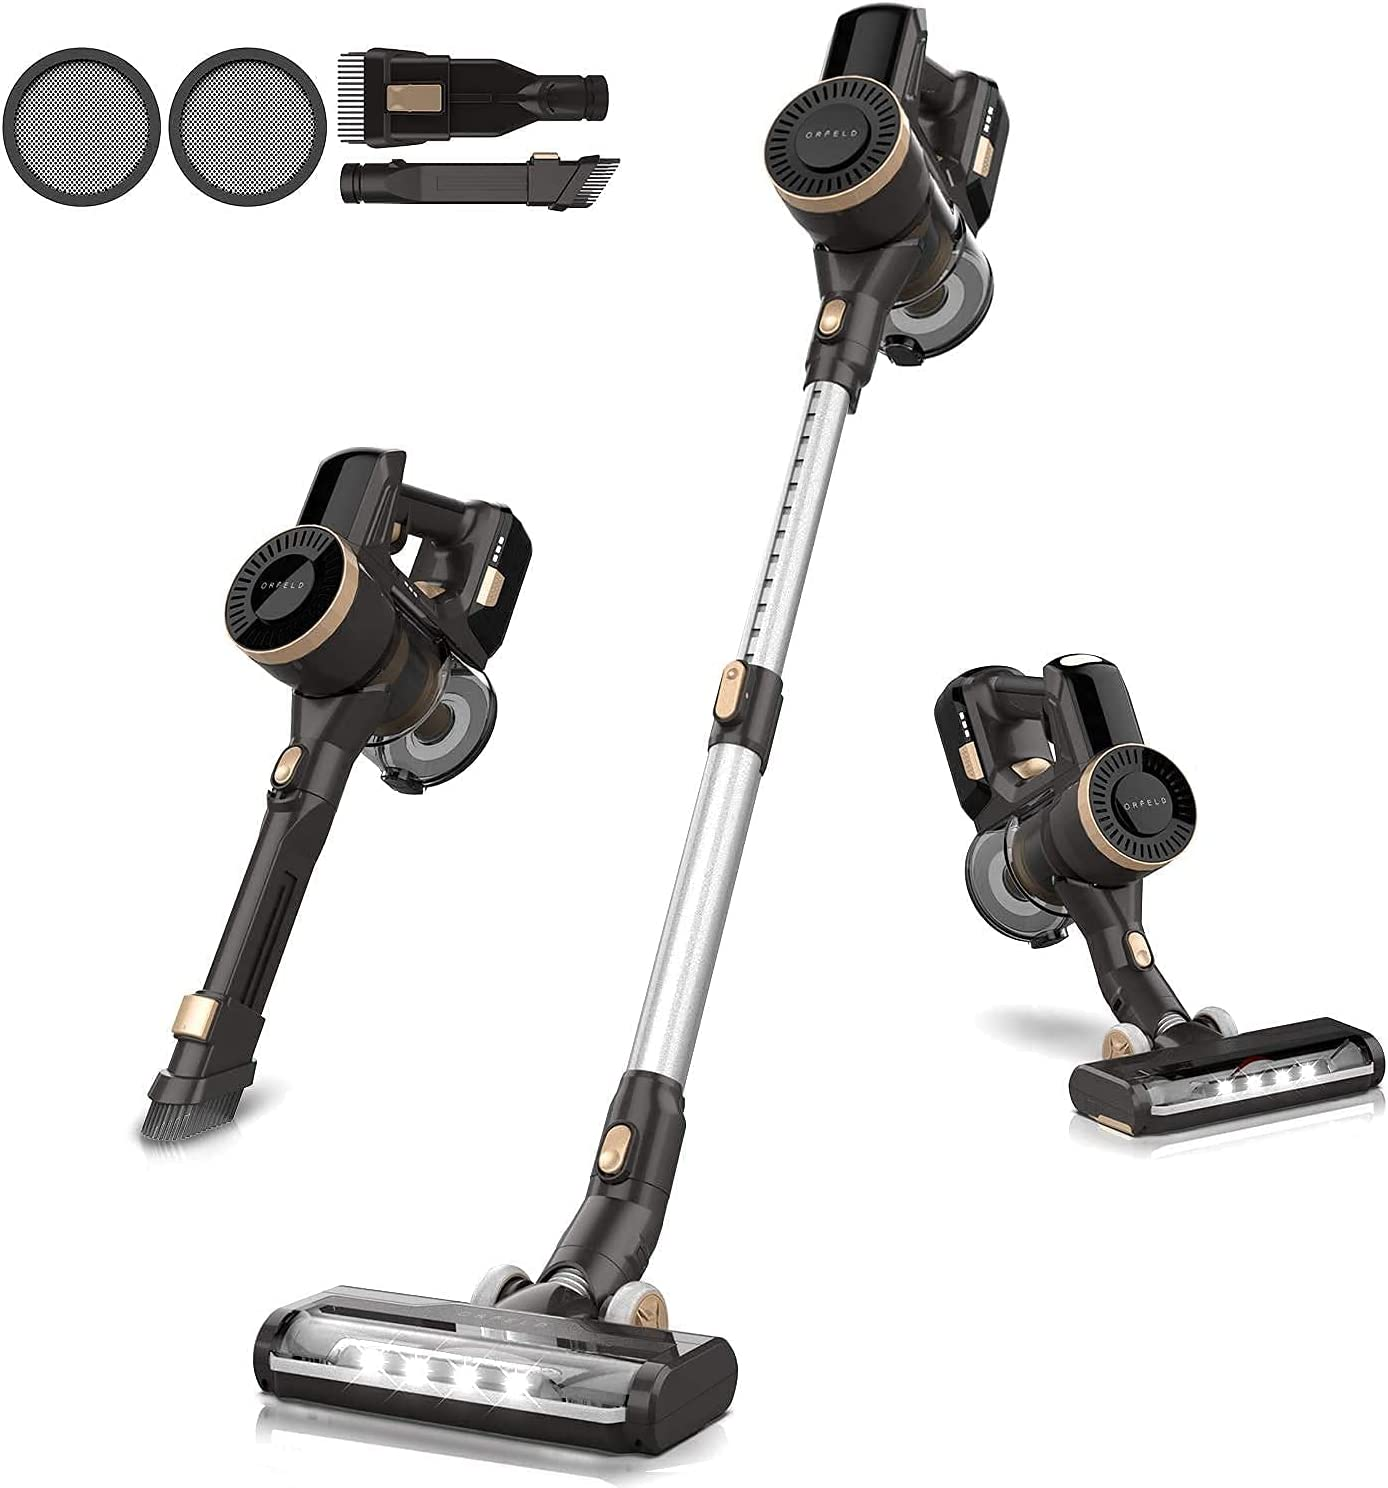 ORFELD Cordless Vacuum Cleaner 22000Pa Suction mins Max 41% OFF Mail order cheap 45 Powerful